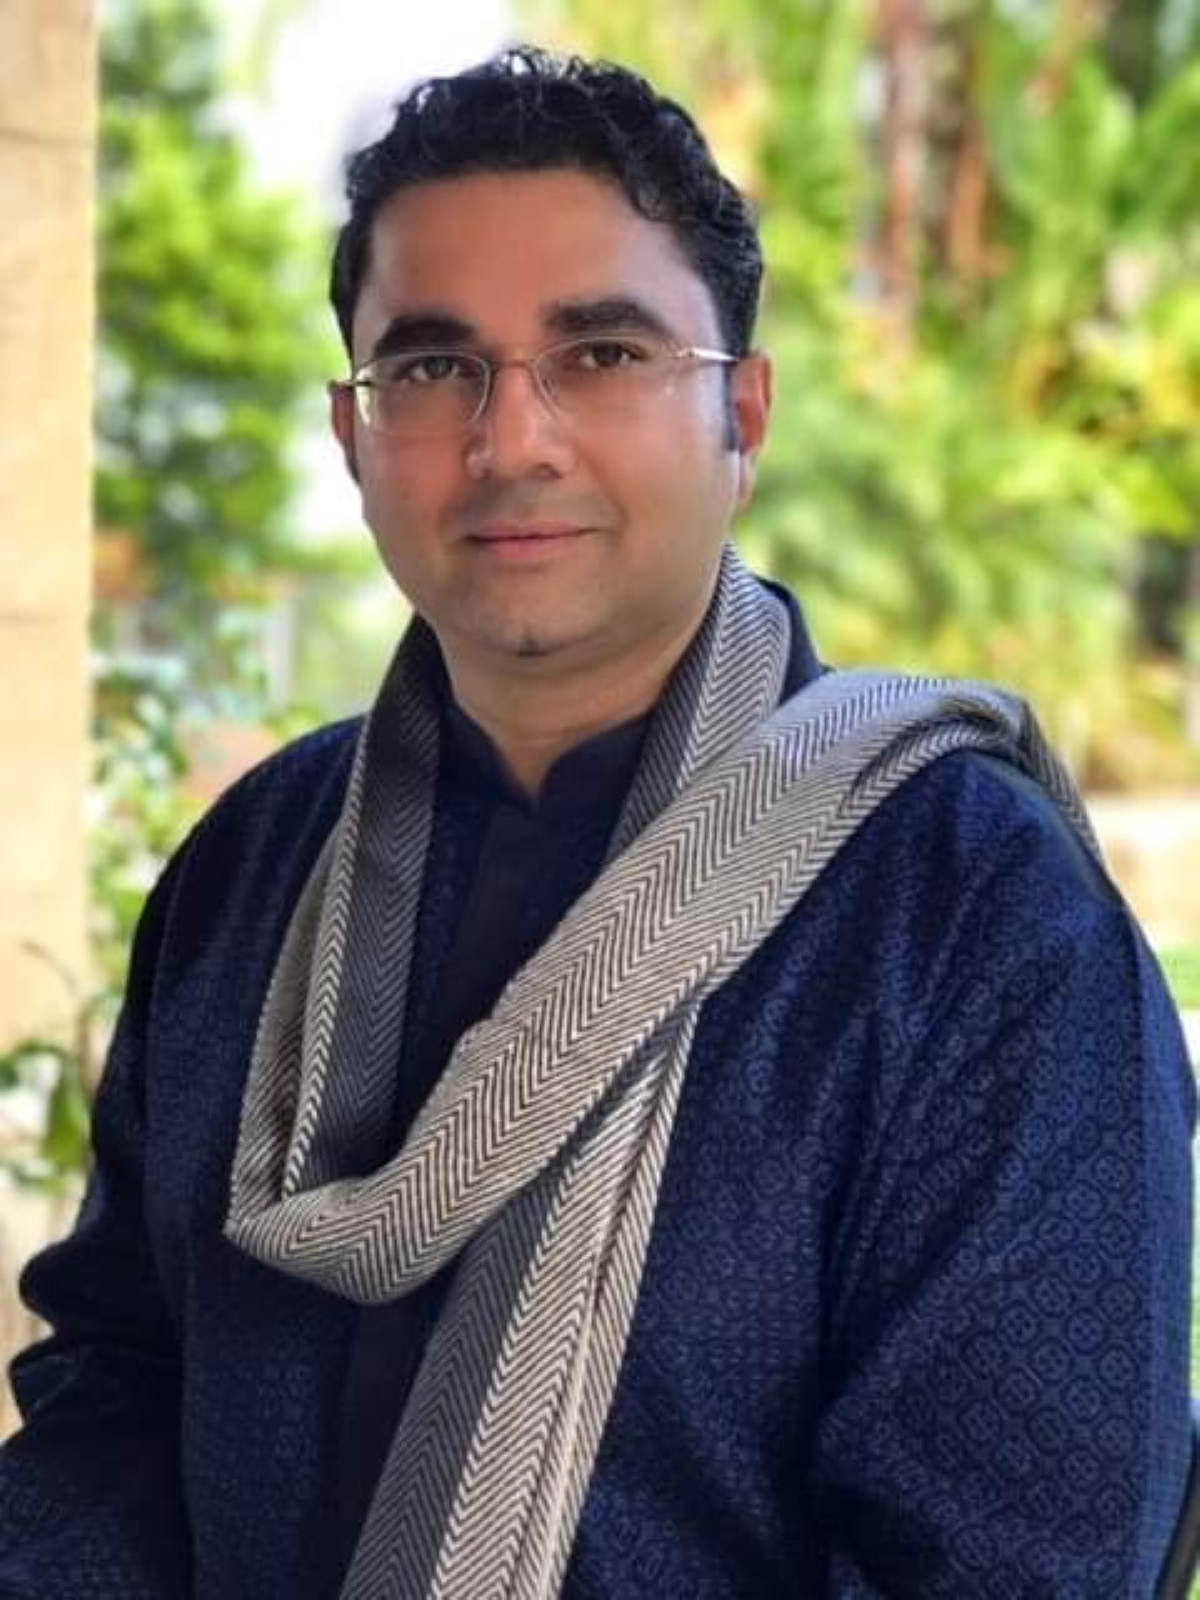 [Rattan Gujadhur] In Conversation with Sandeep Ranade – Indian Classical Singer and Computer Scientist